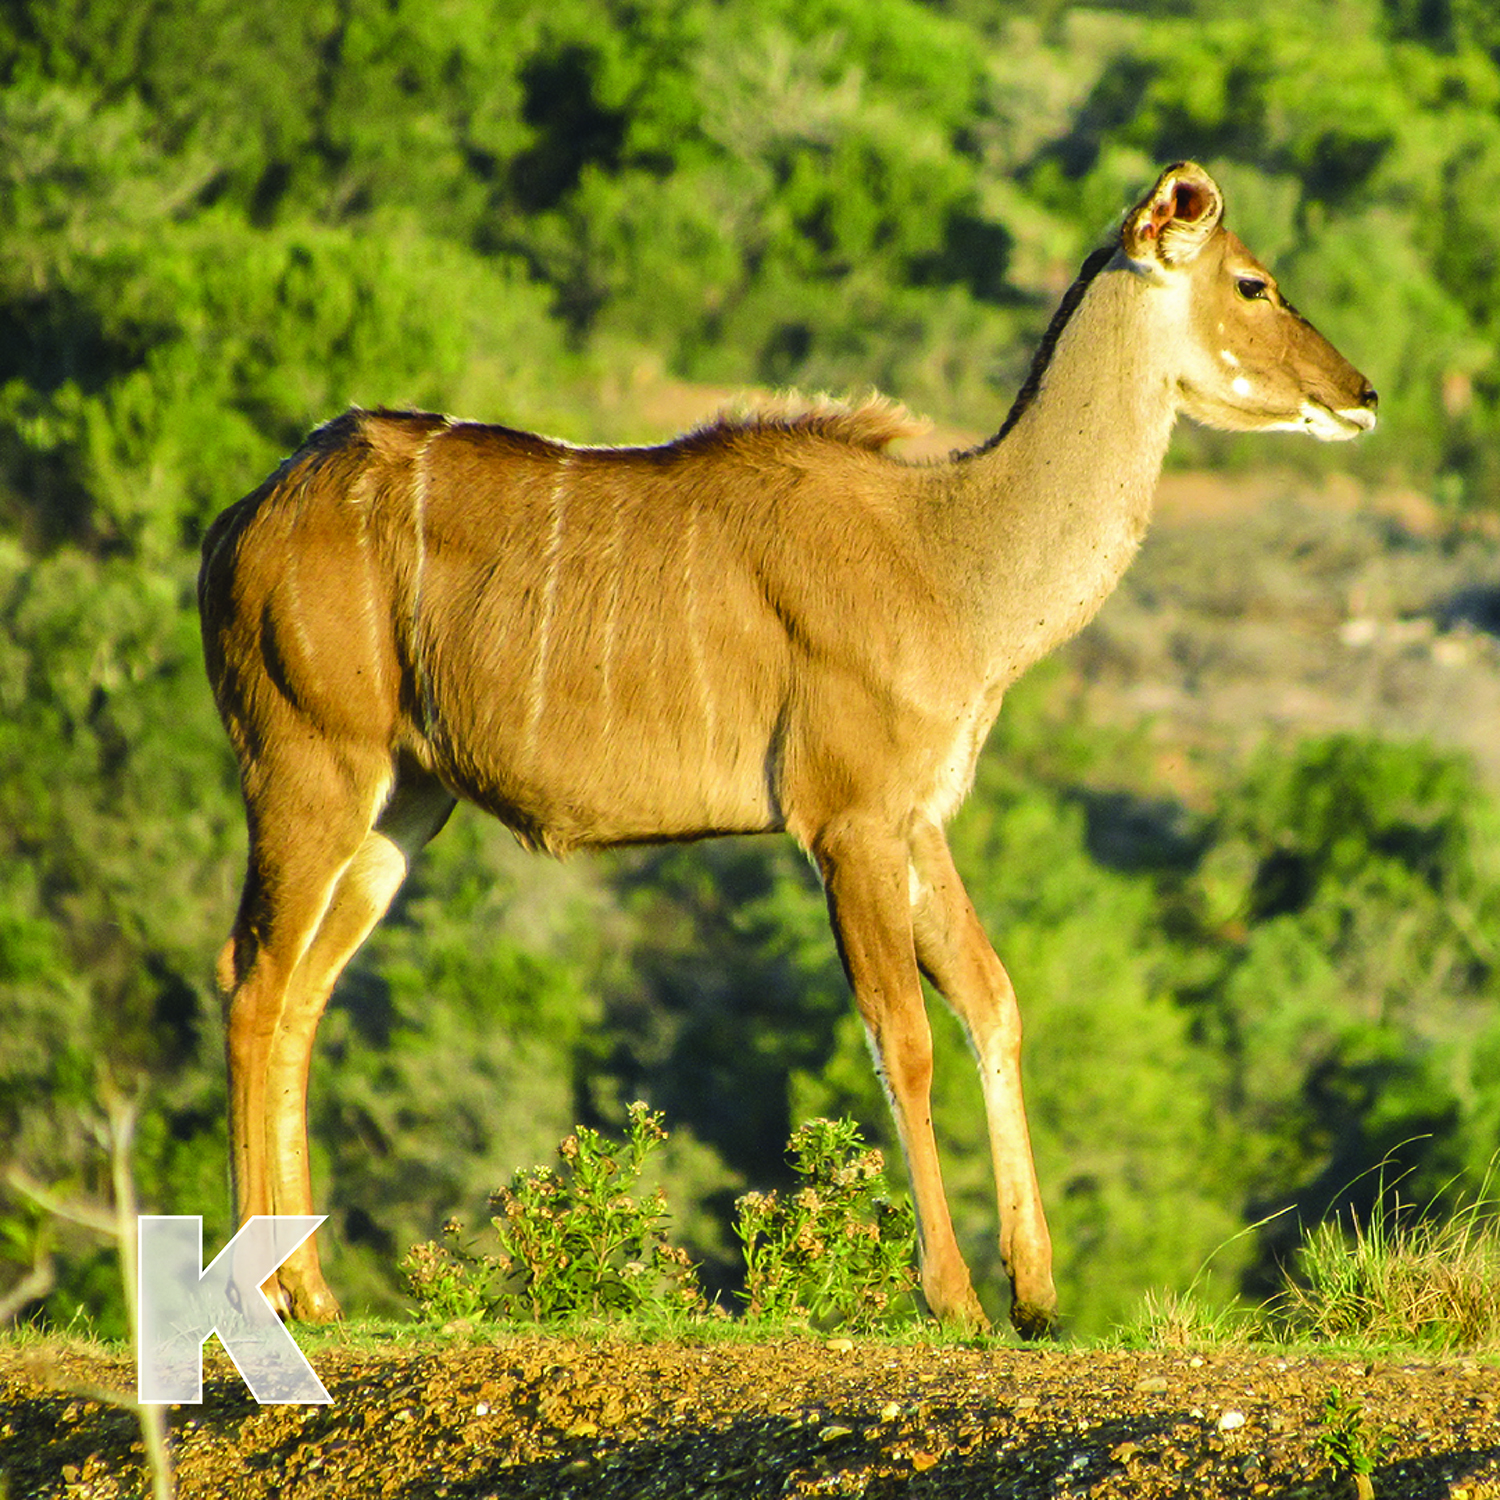 K is for Kudu